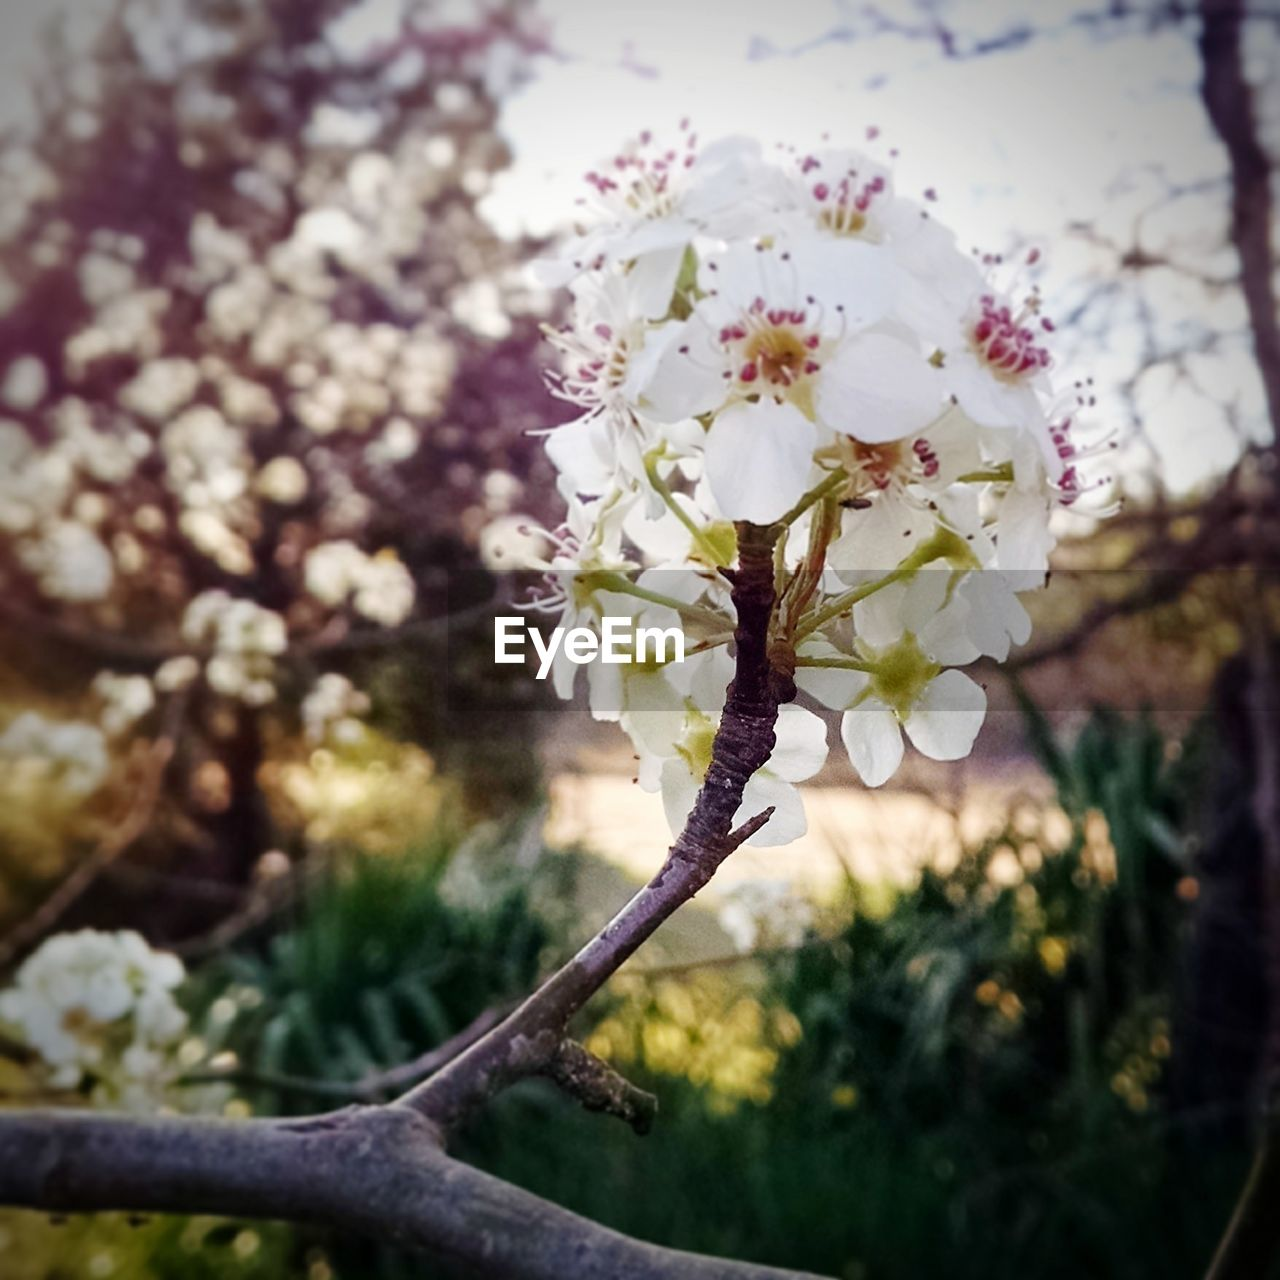 flower, growth, fragility, nature, tree, blossom, beauty in nature, springtime, apple blossom, no people, botany, freshness, focus on foreground, day, branch, white color, close-up, outdoors, blooming, flower head